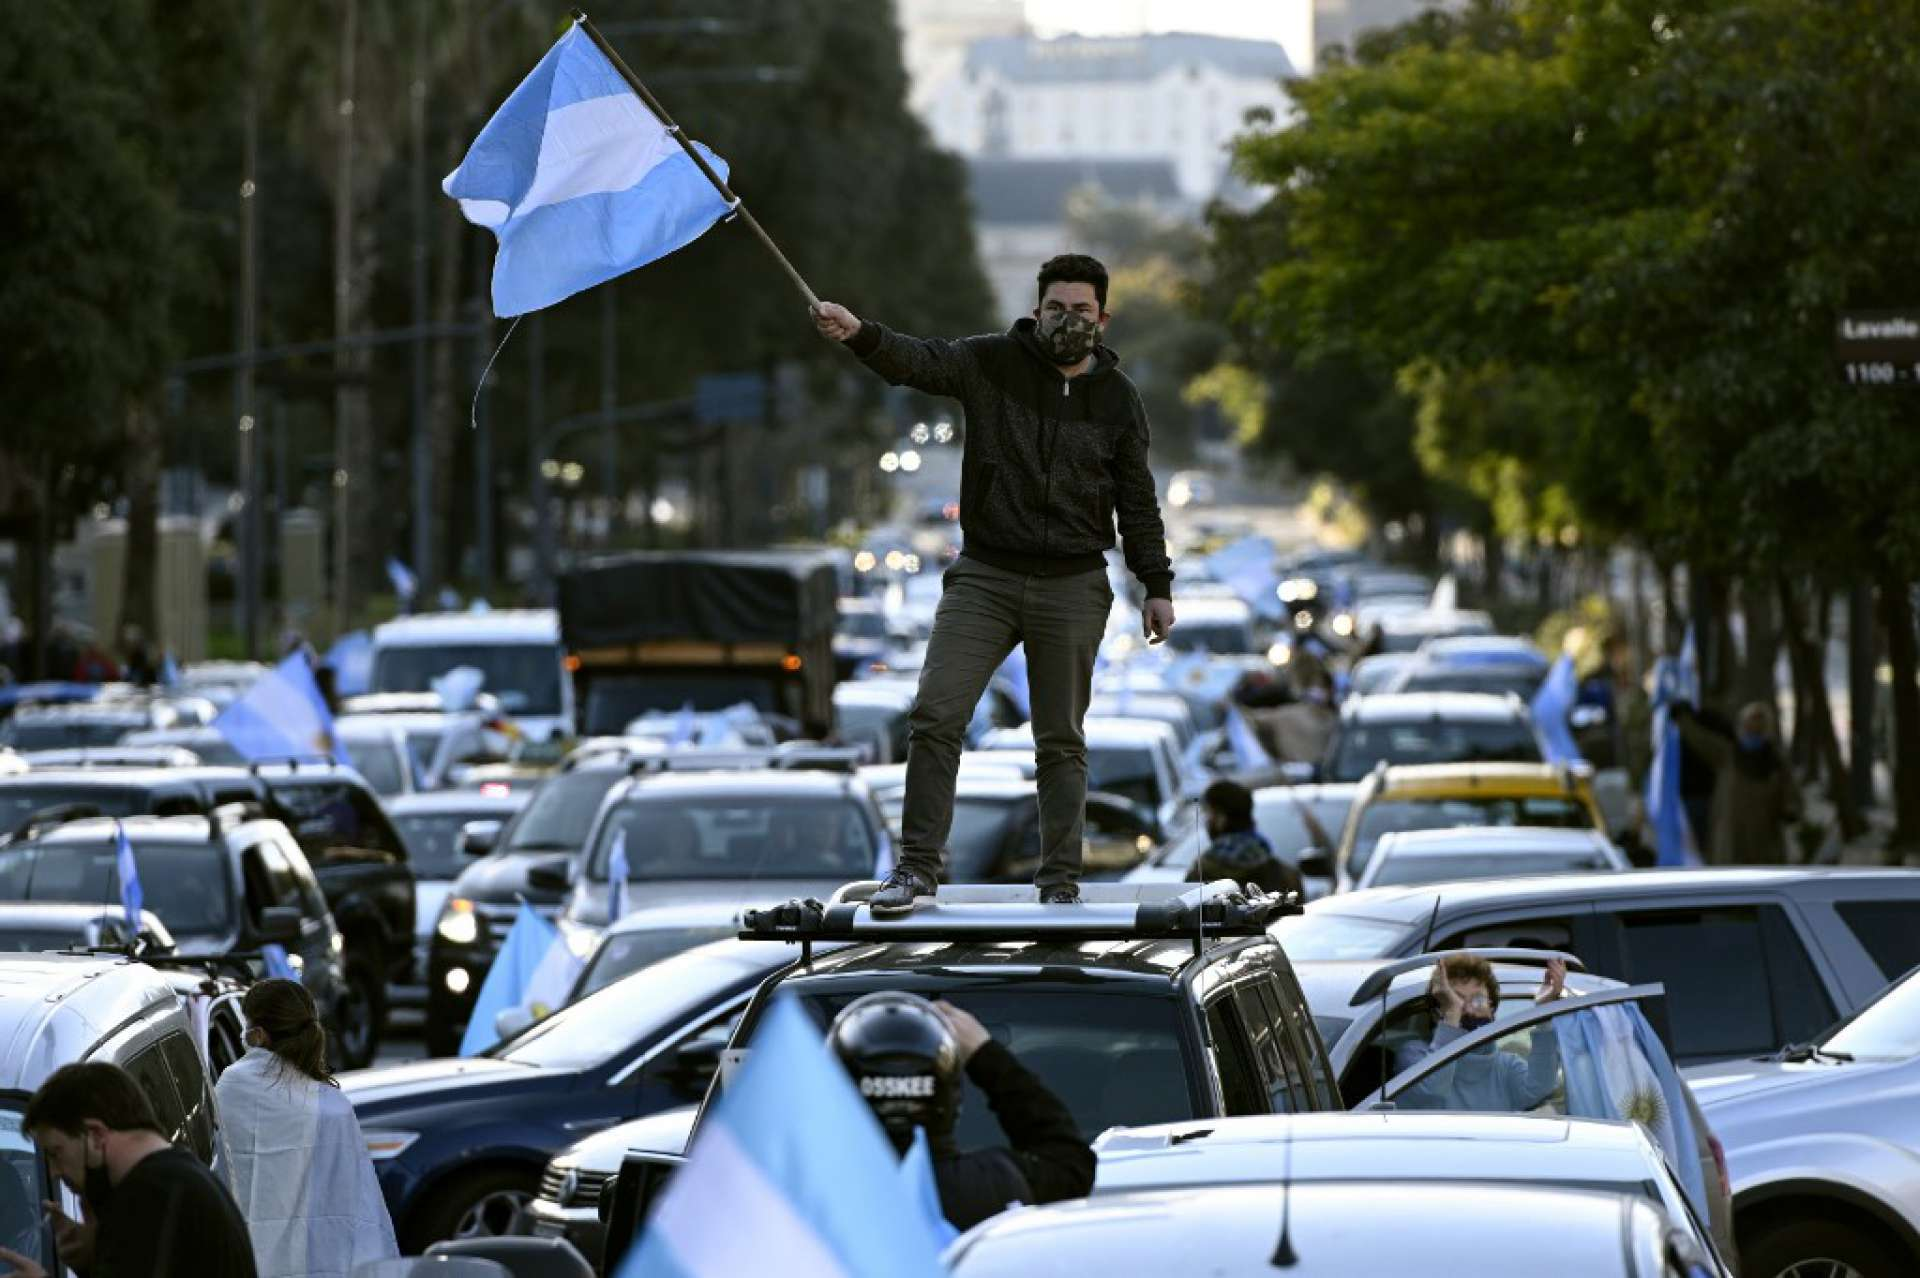 A man waves the Argentine flag during a protest against Argentina's President Alberto Fernandez health policies during the tighten virus lockdown measures against the spread of the novel COVID-19 coronavirus, at Republica square in Buenos Aires, Argentina, on July 9, 2020. (Photo by )       Caption (Foto: JUAN MABROMATA / AFP)